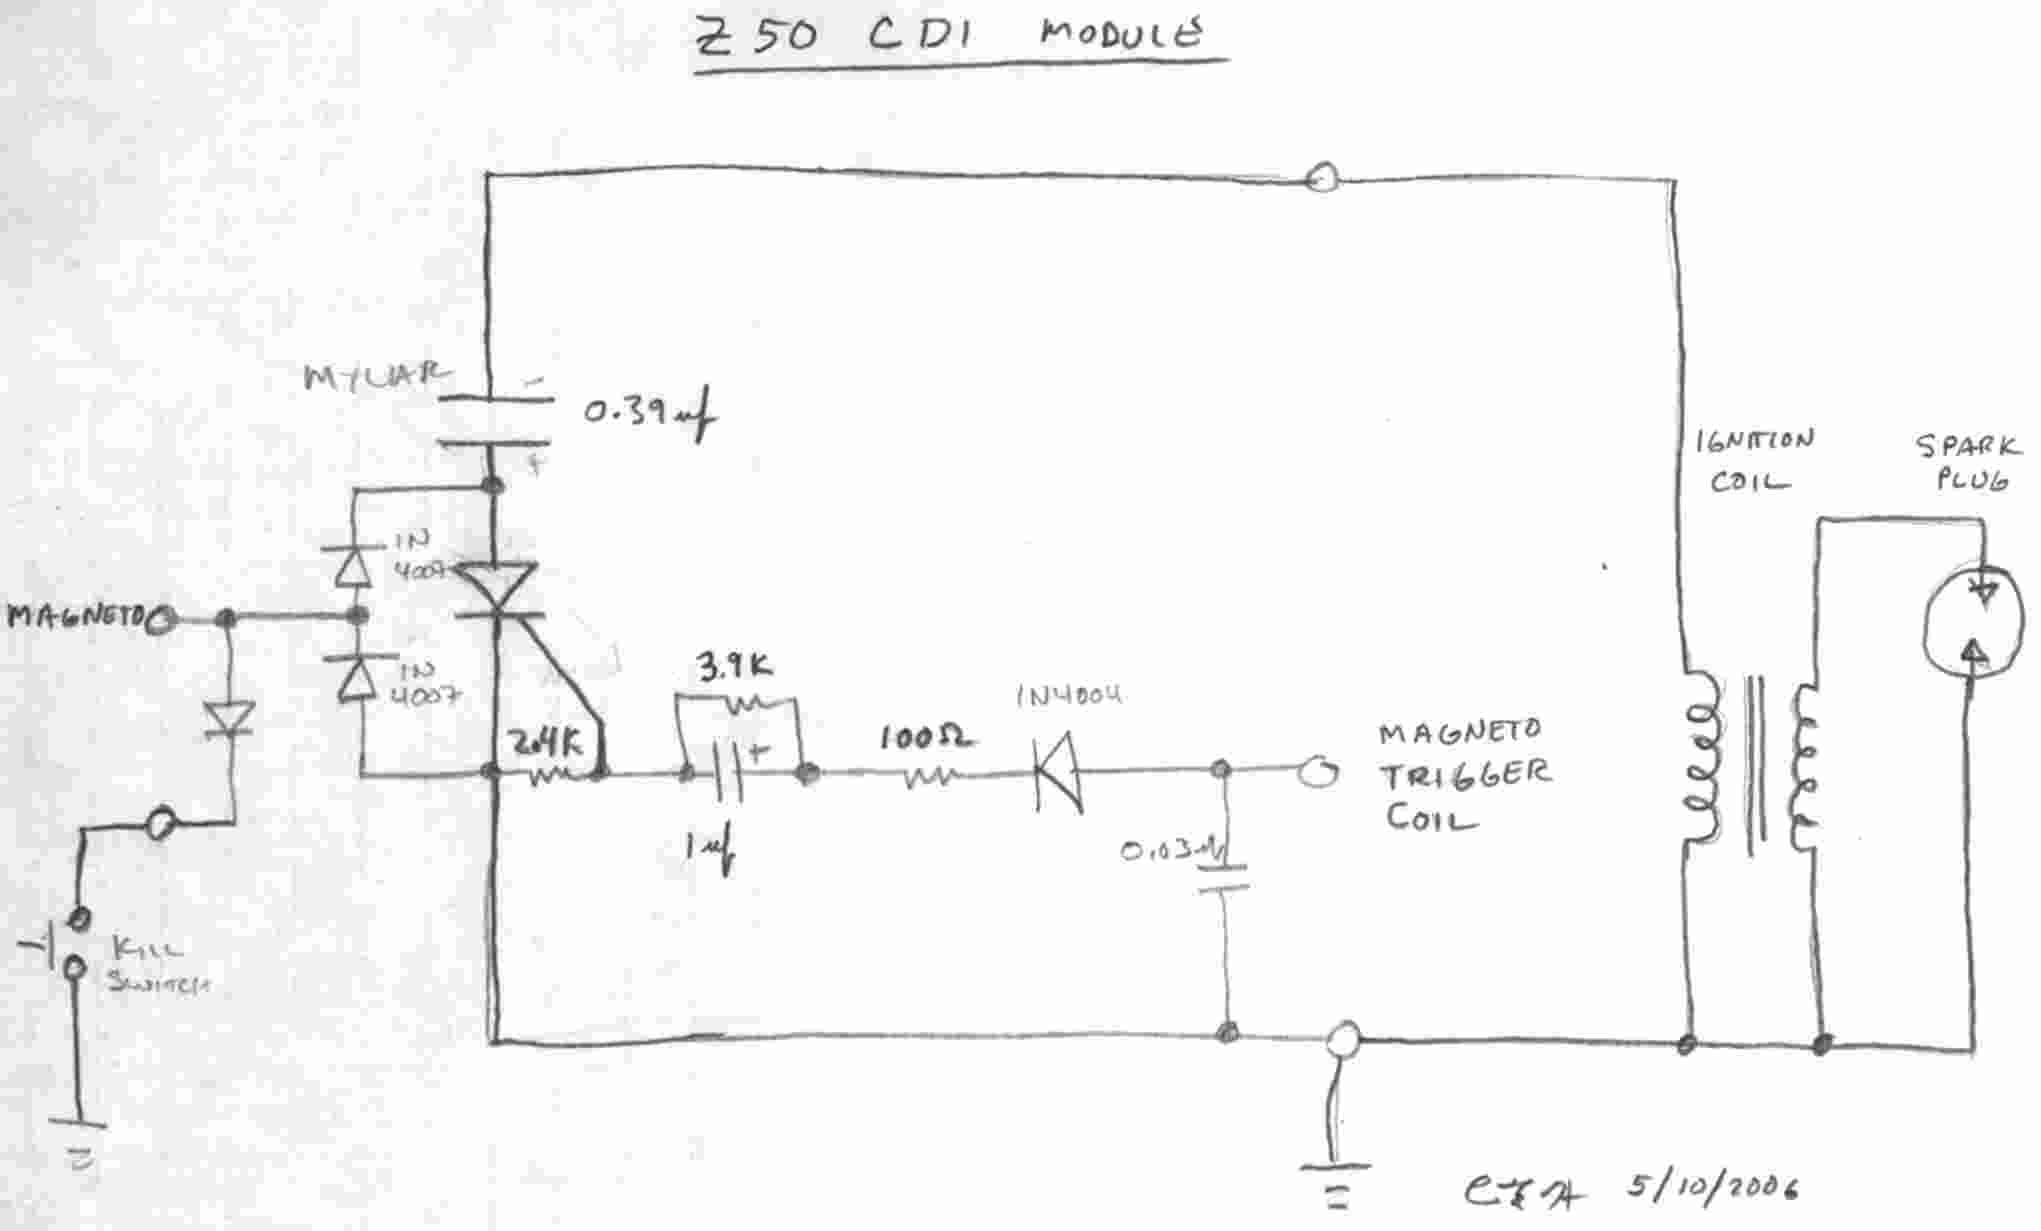 white rodgers type 91 relay wiring diagram guitar jack socket get free image about